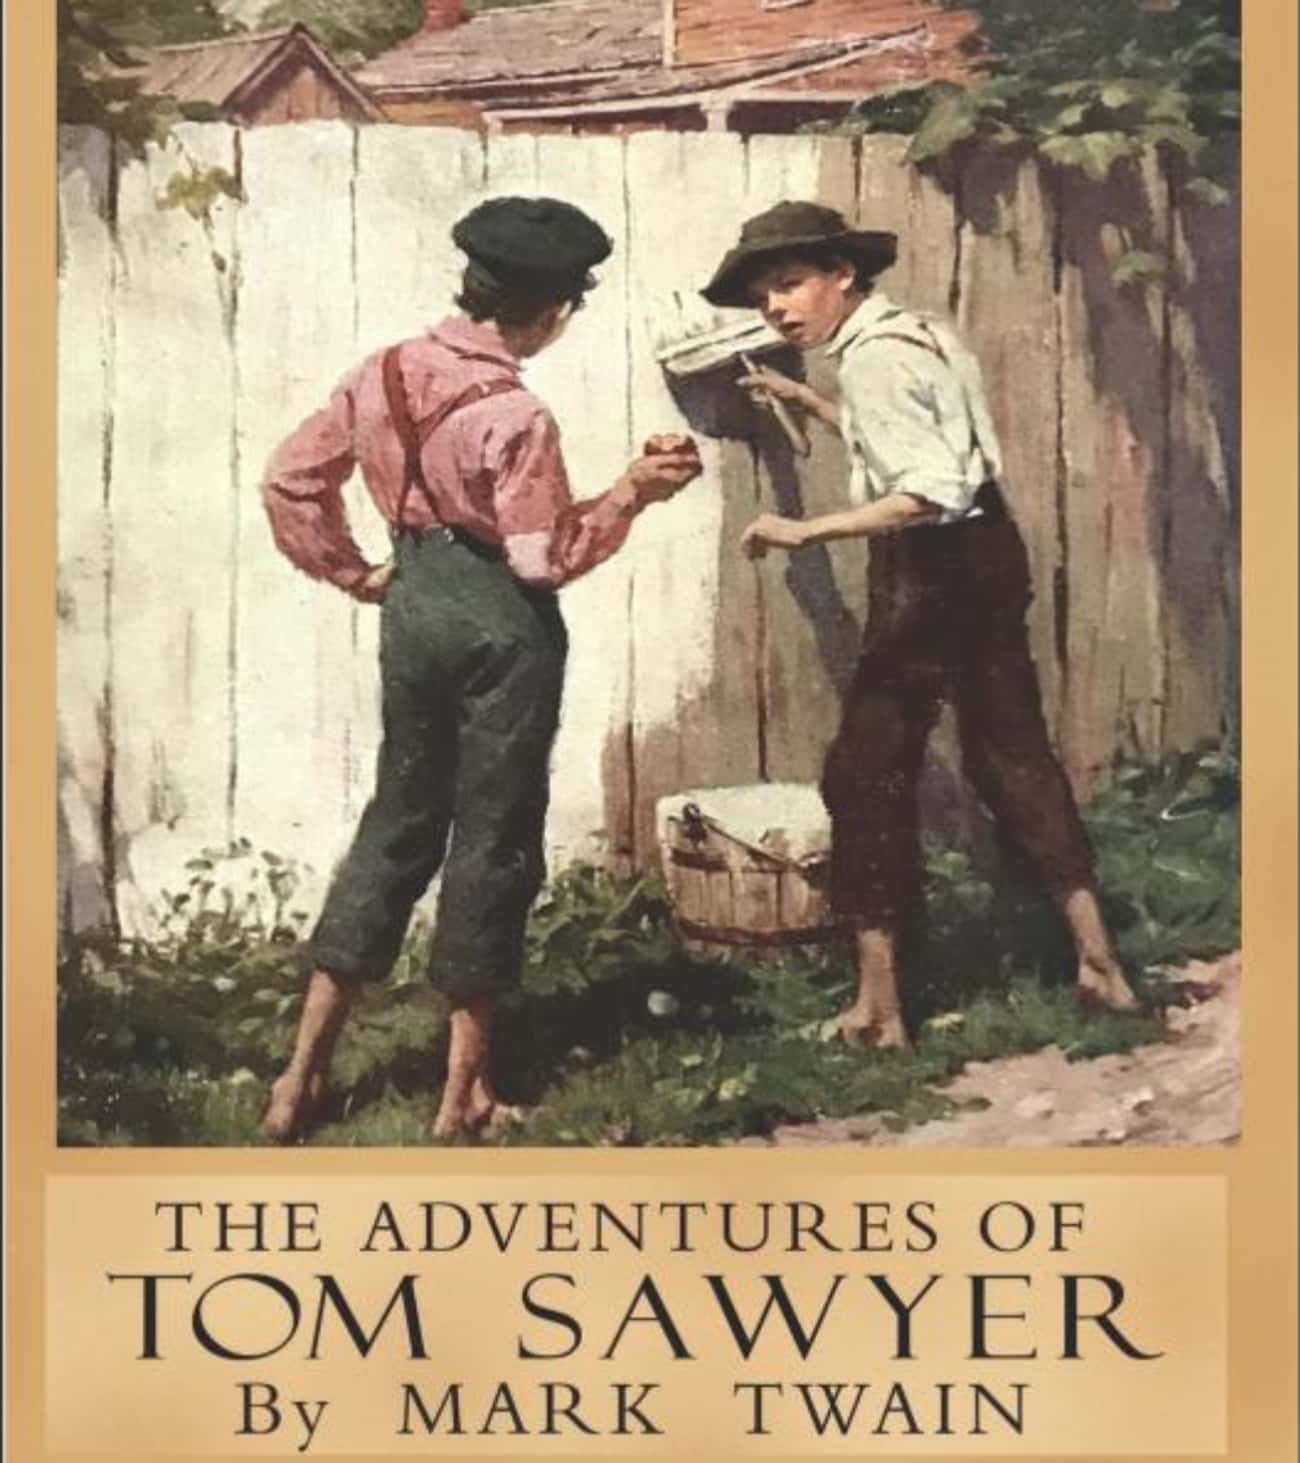 The Adventures of Tom Sawyer / is listed (or ranked) 2 on the list Books That Defined Your Youth That You (Almost) Forgot About